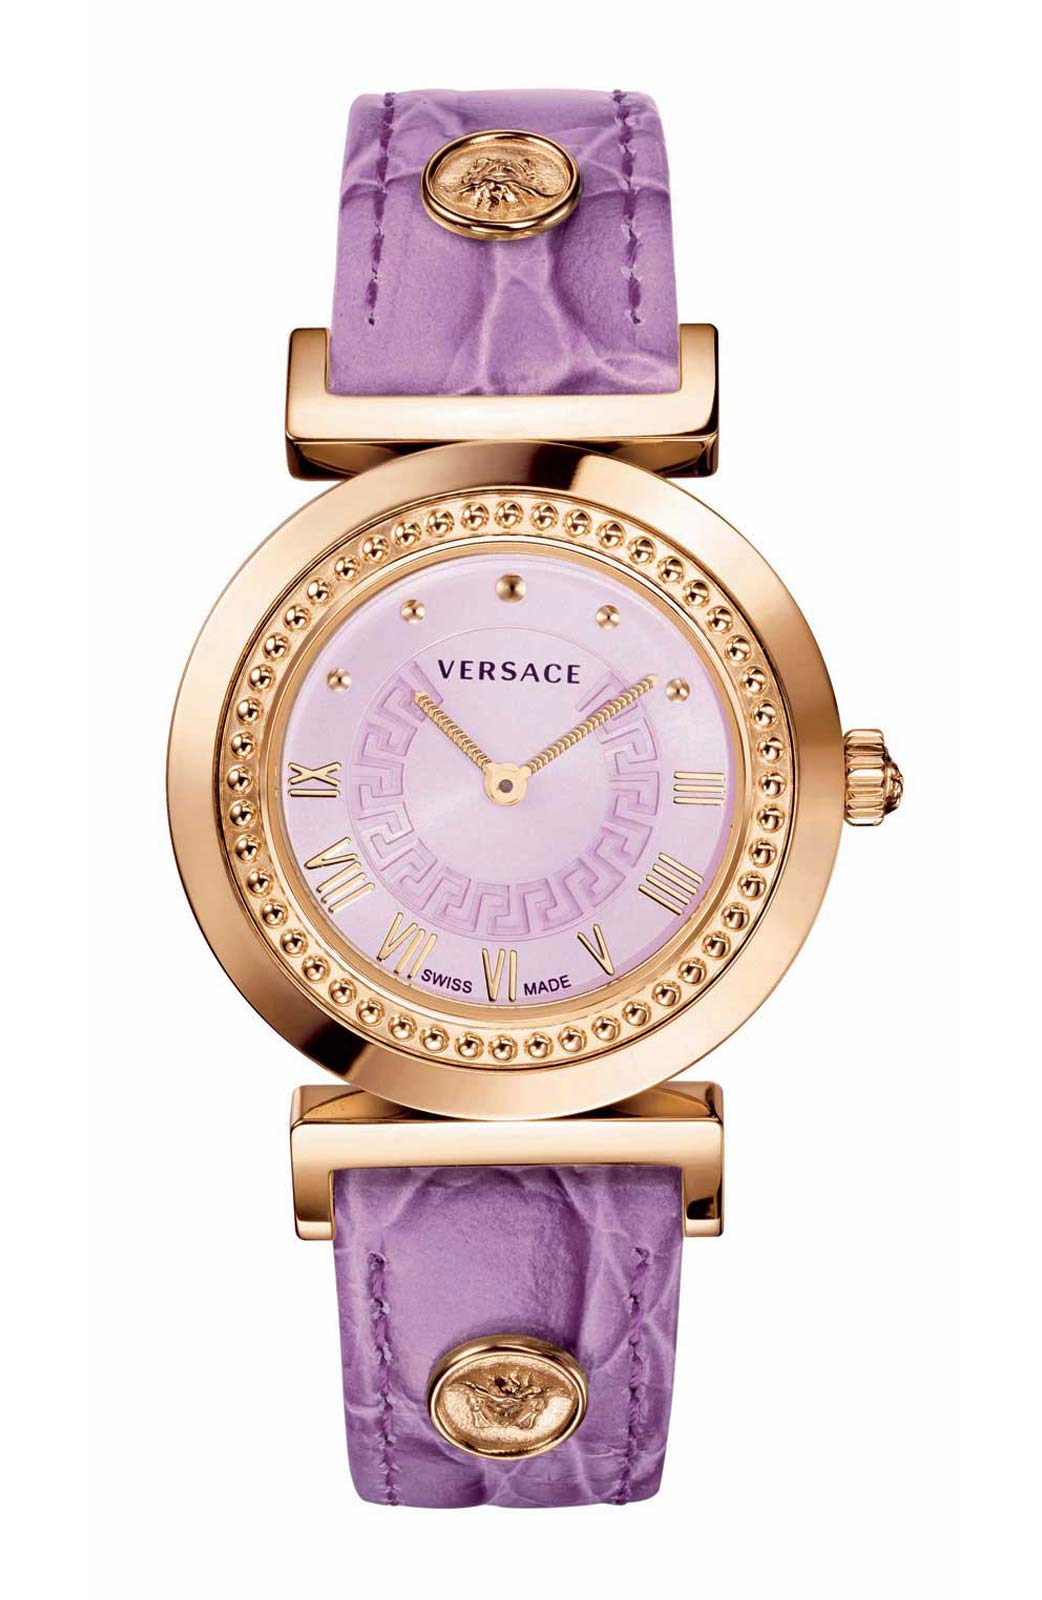 Versace women's watches9